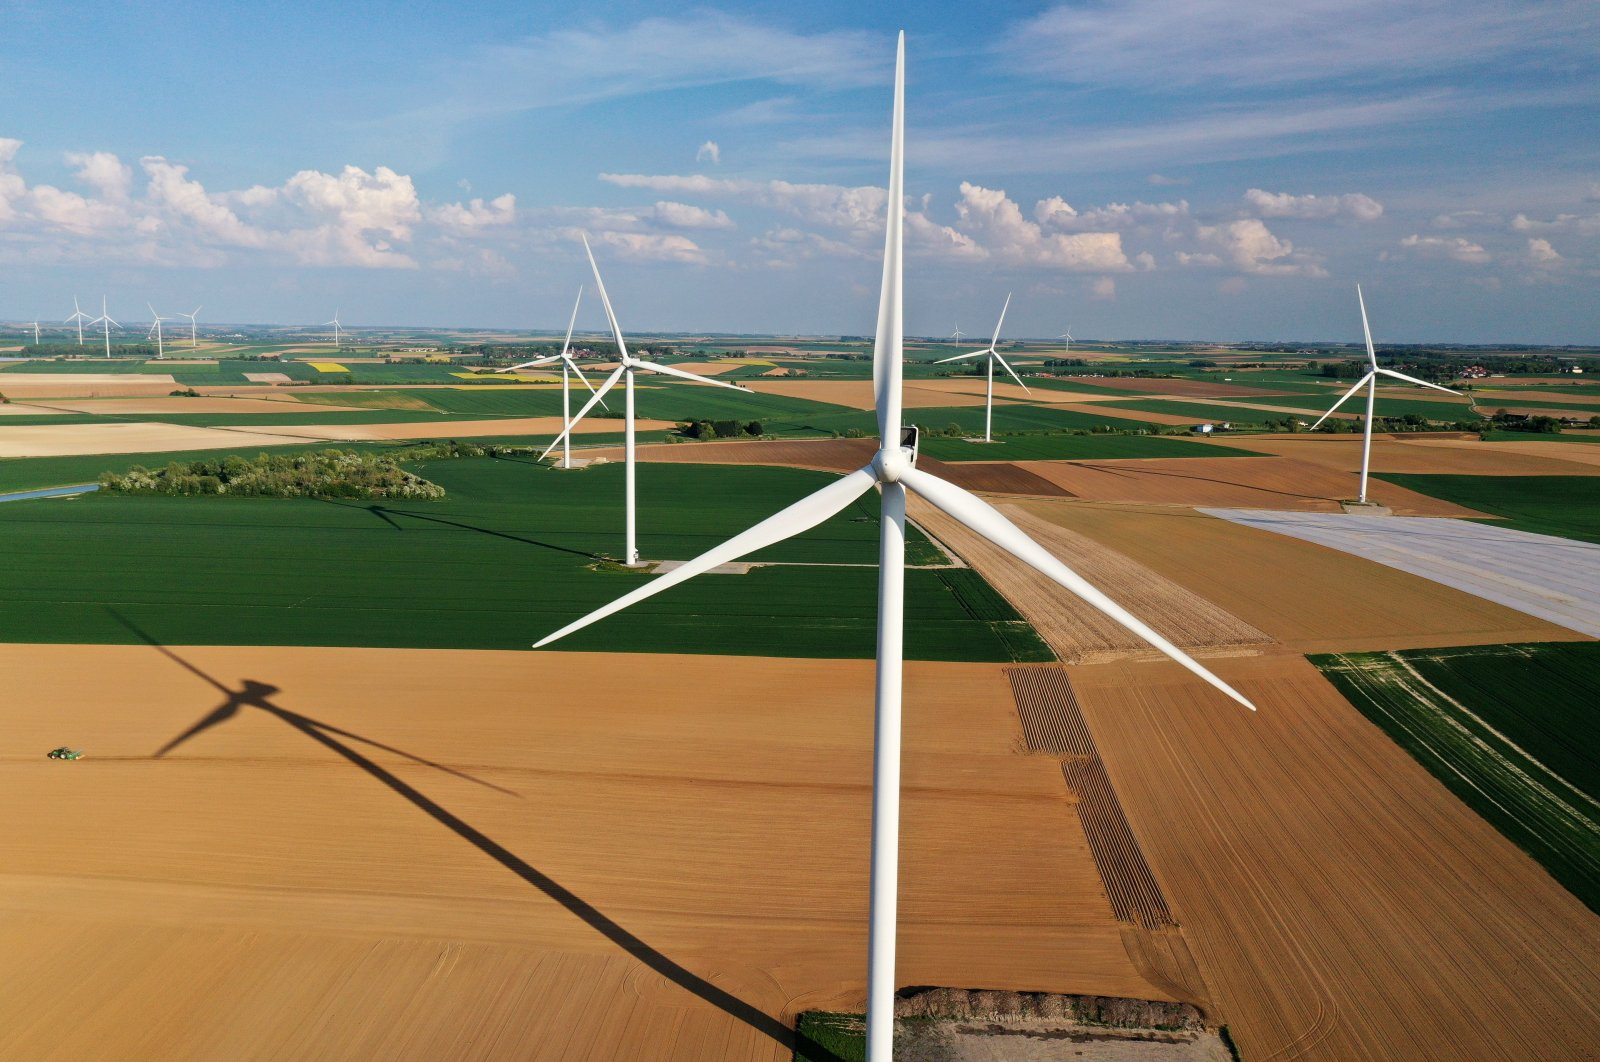 An aerial view shows power-generating windmill turbines in a wind farm in Graincourt-les-Havrincourt, France, April 27, 2020. (Reuters Photo)